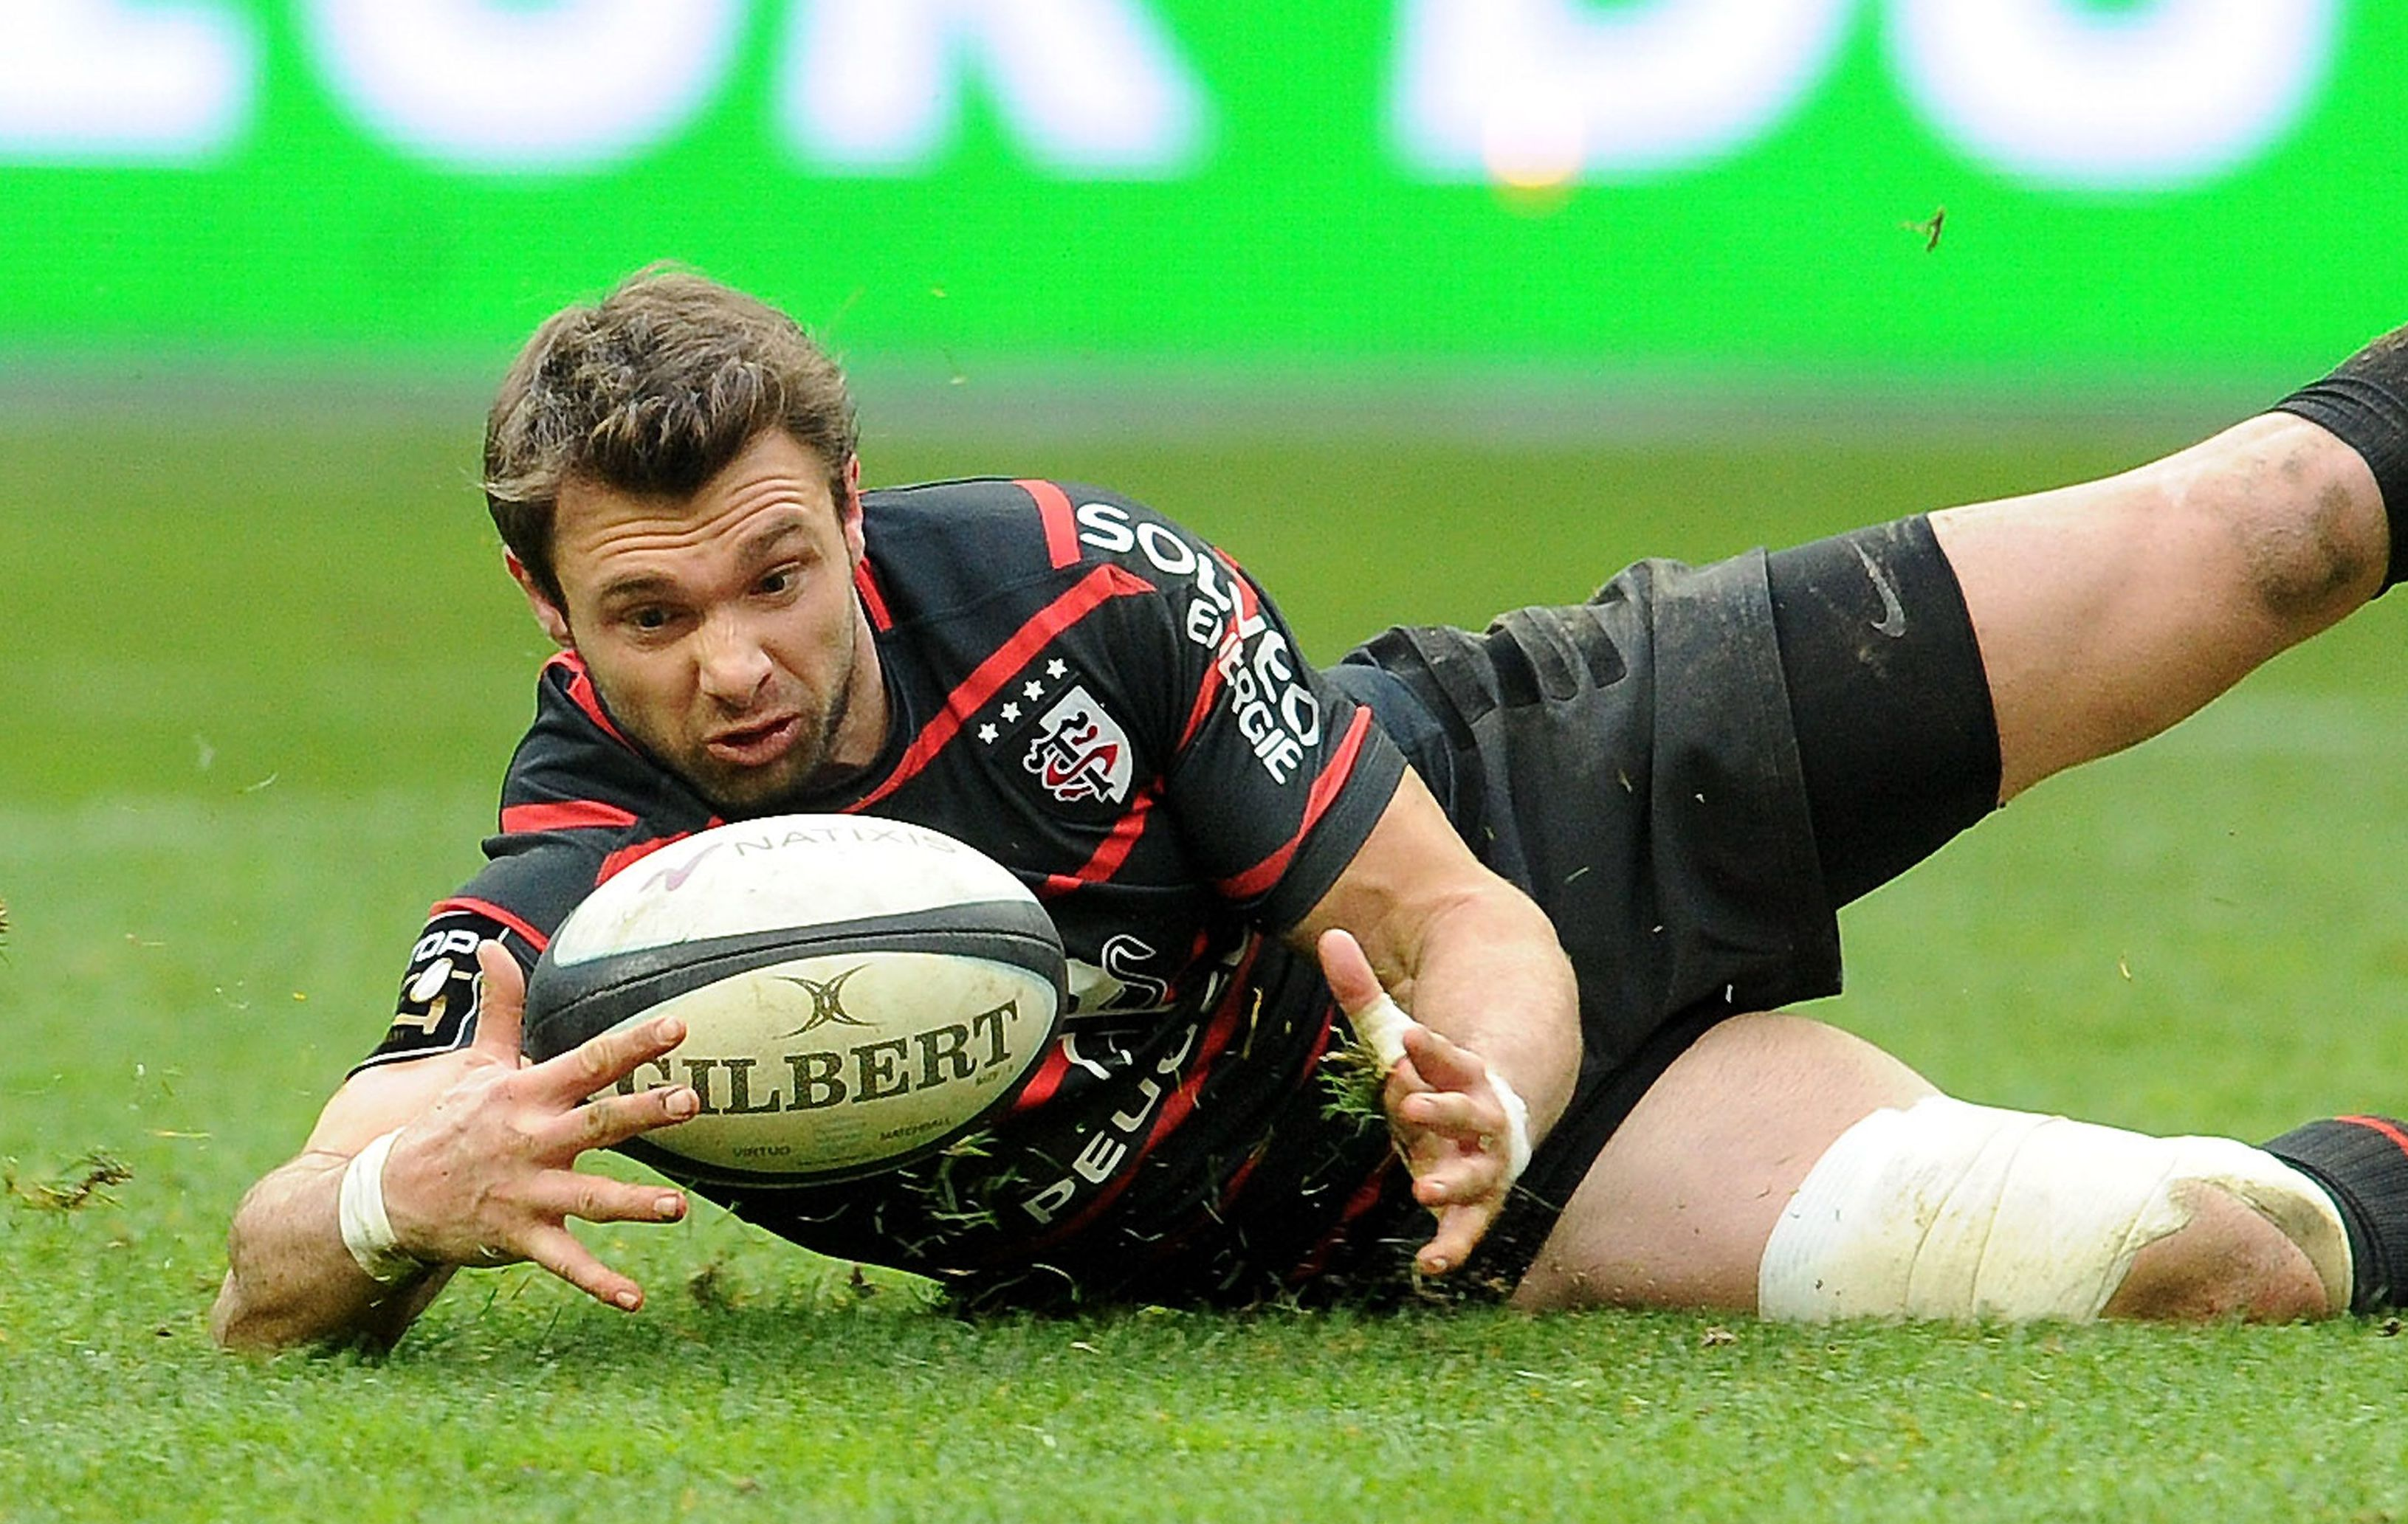 montpellier r gale toulouse s exporte top 14 rugby. Black Bedroom Furniture Sets. Home Design Ideas